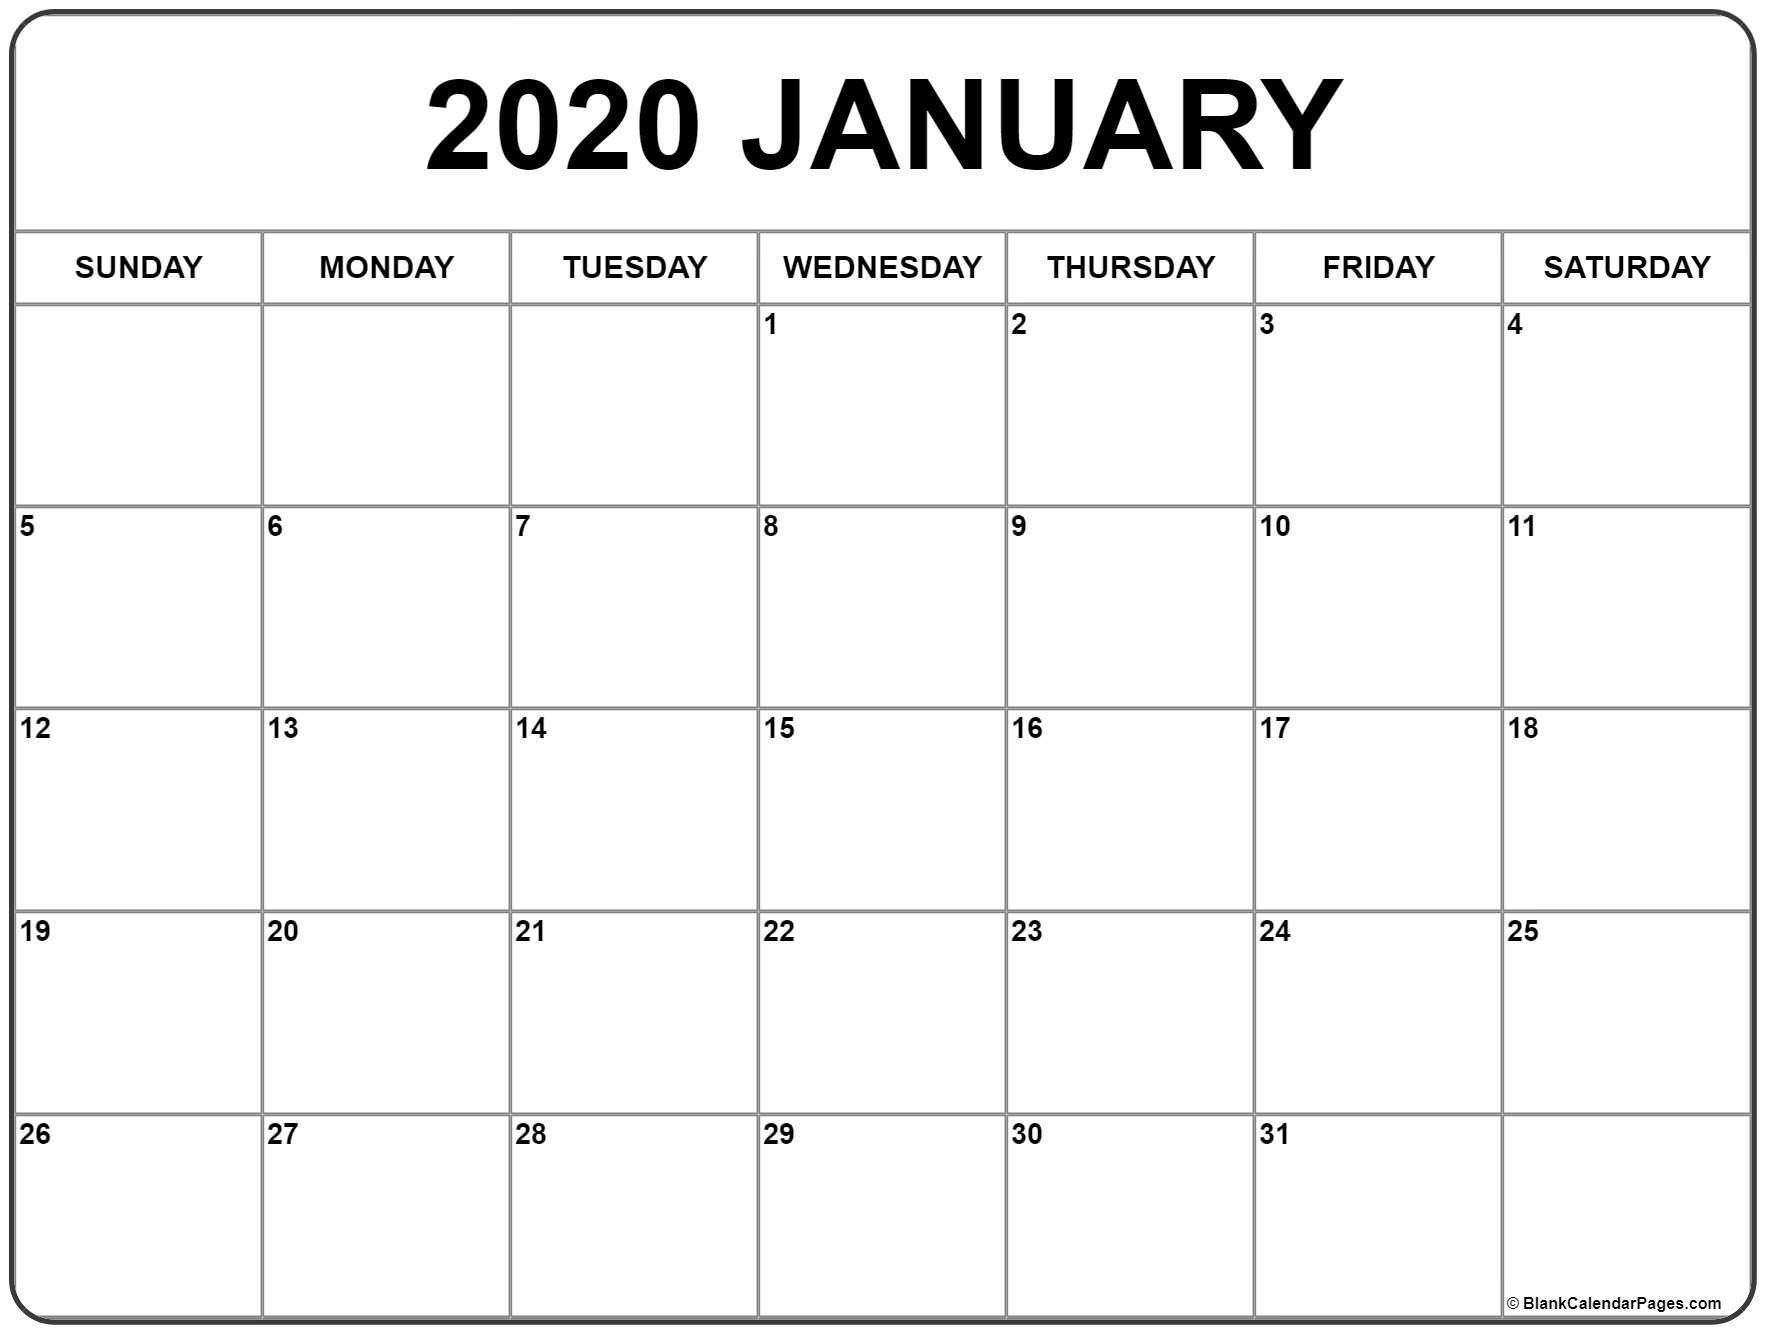 January 2020 Calendar Wallpapers  Top Free January 2020 throughout Show Calendar For January 2020